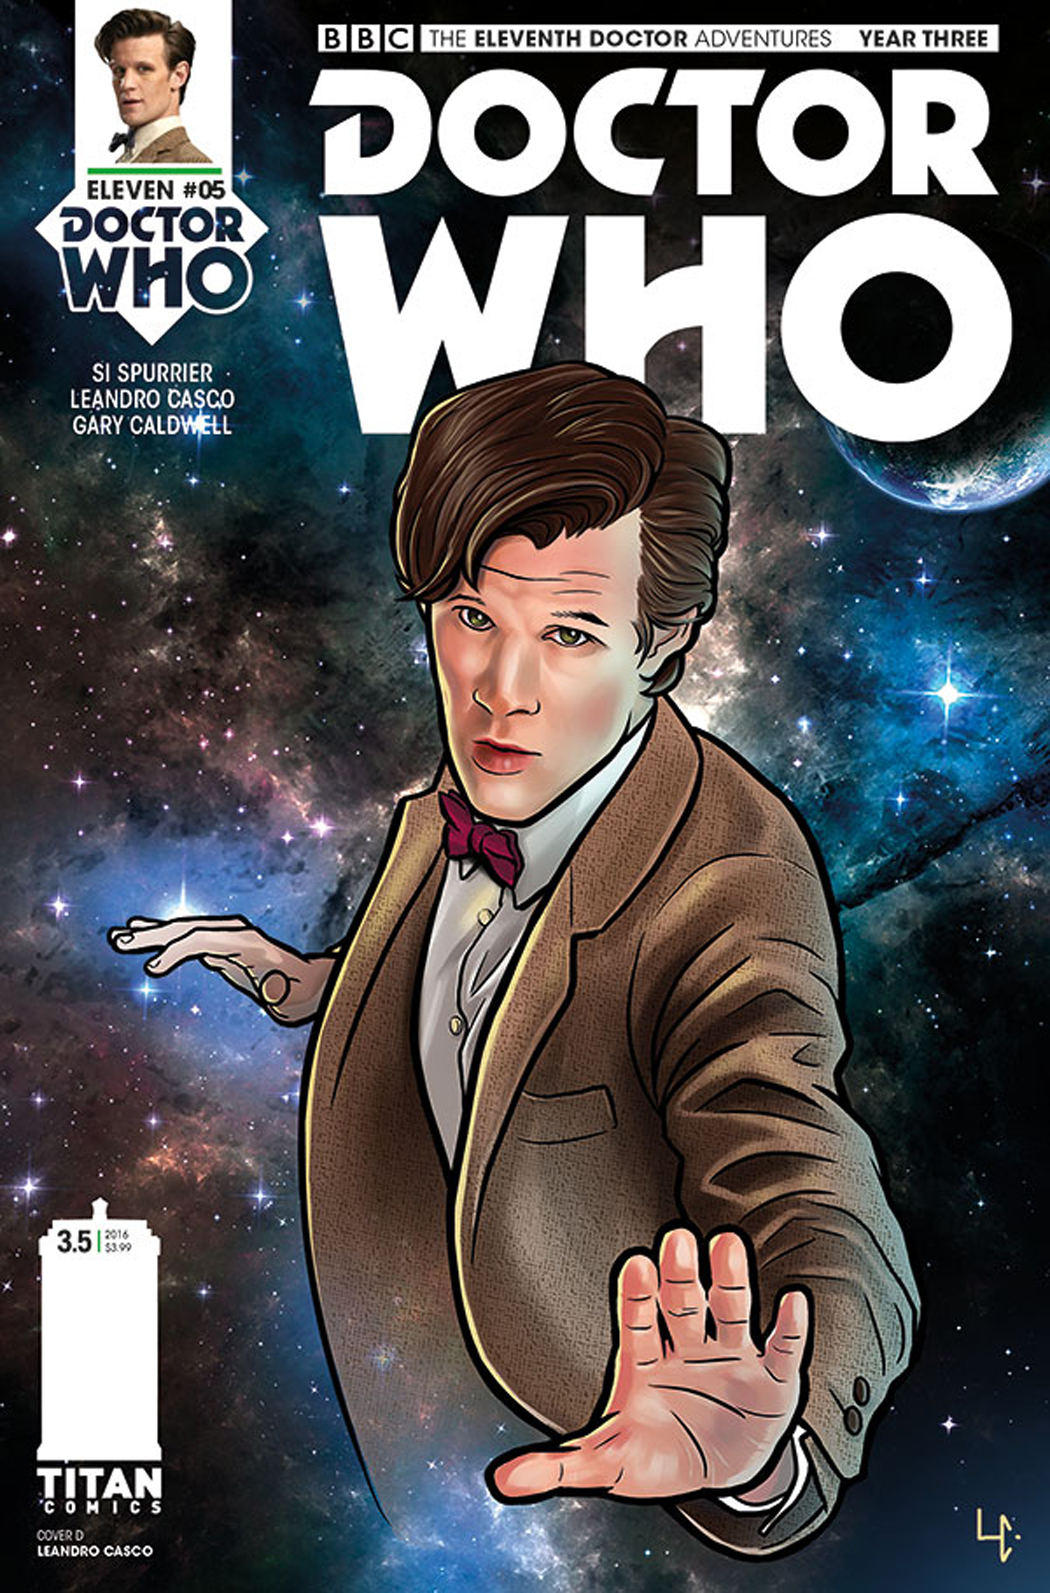 DOCTOR WHO 11TH YEAR THREE #5 CVR D CASCO